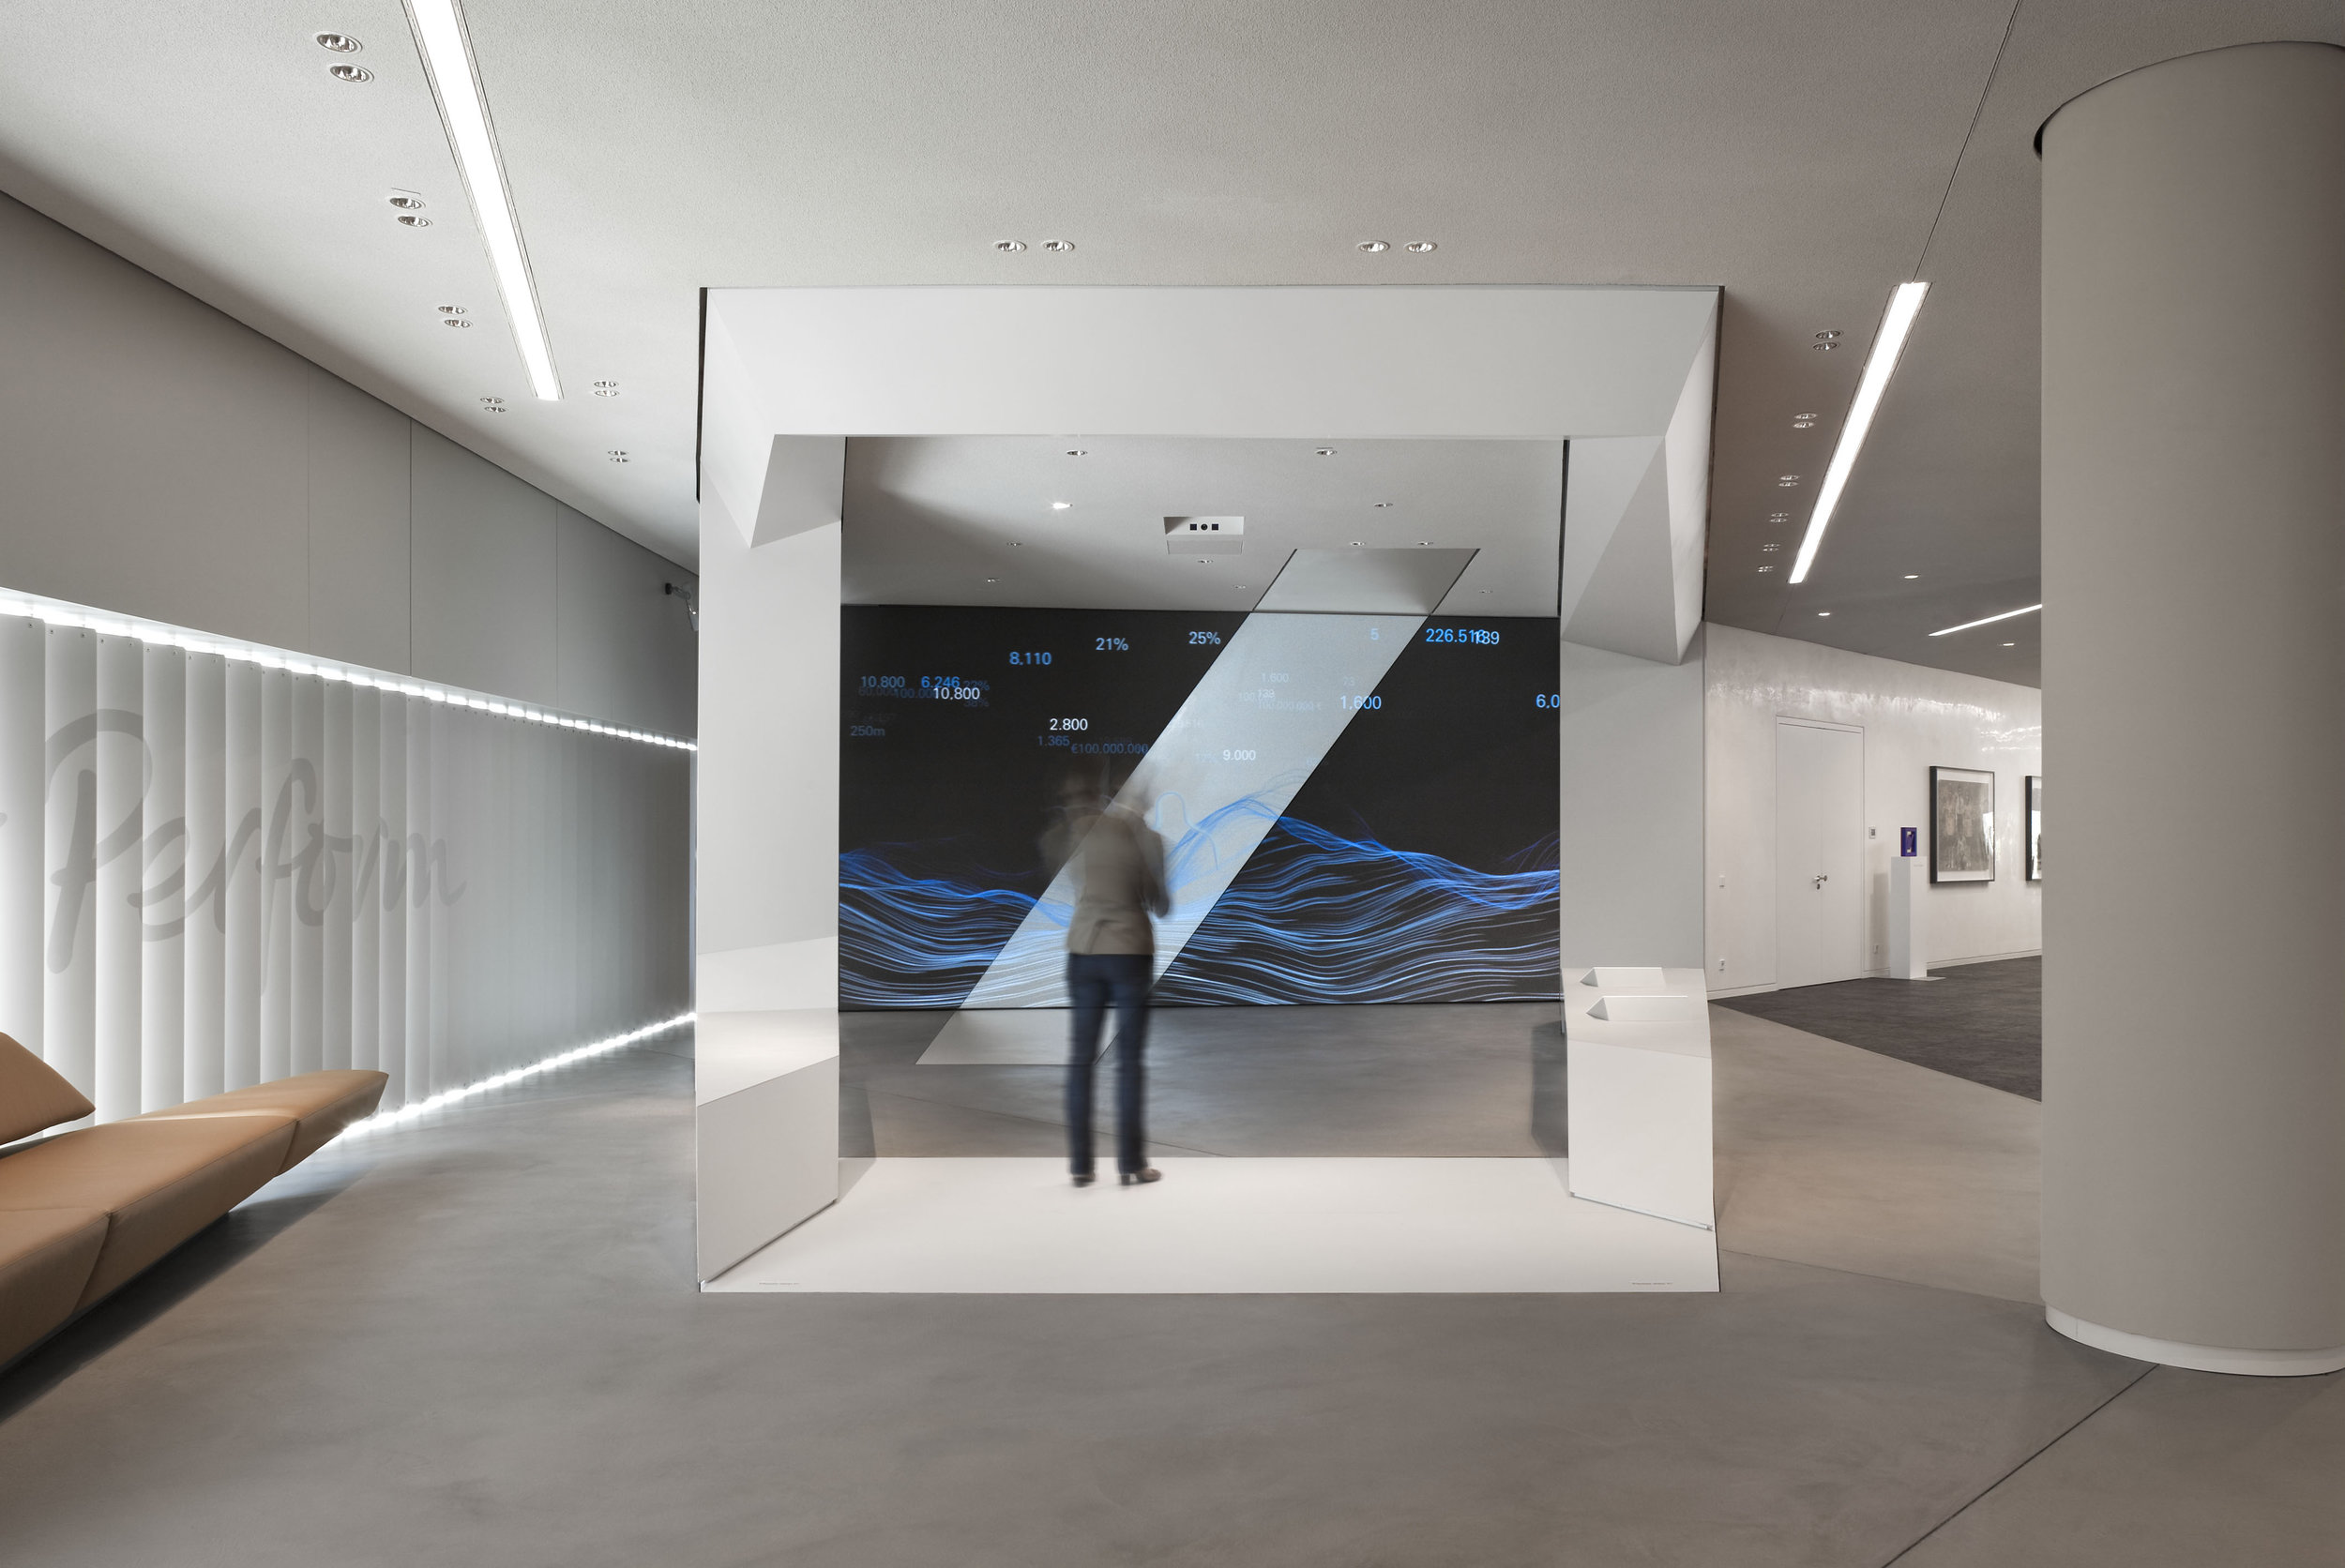 deutsche-bank-brand-space_coorporate-interior-design_coordination-berlin_09.jpg